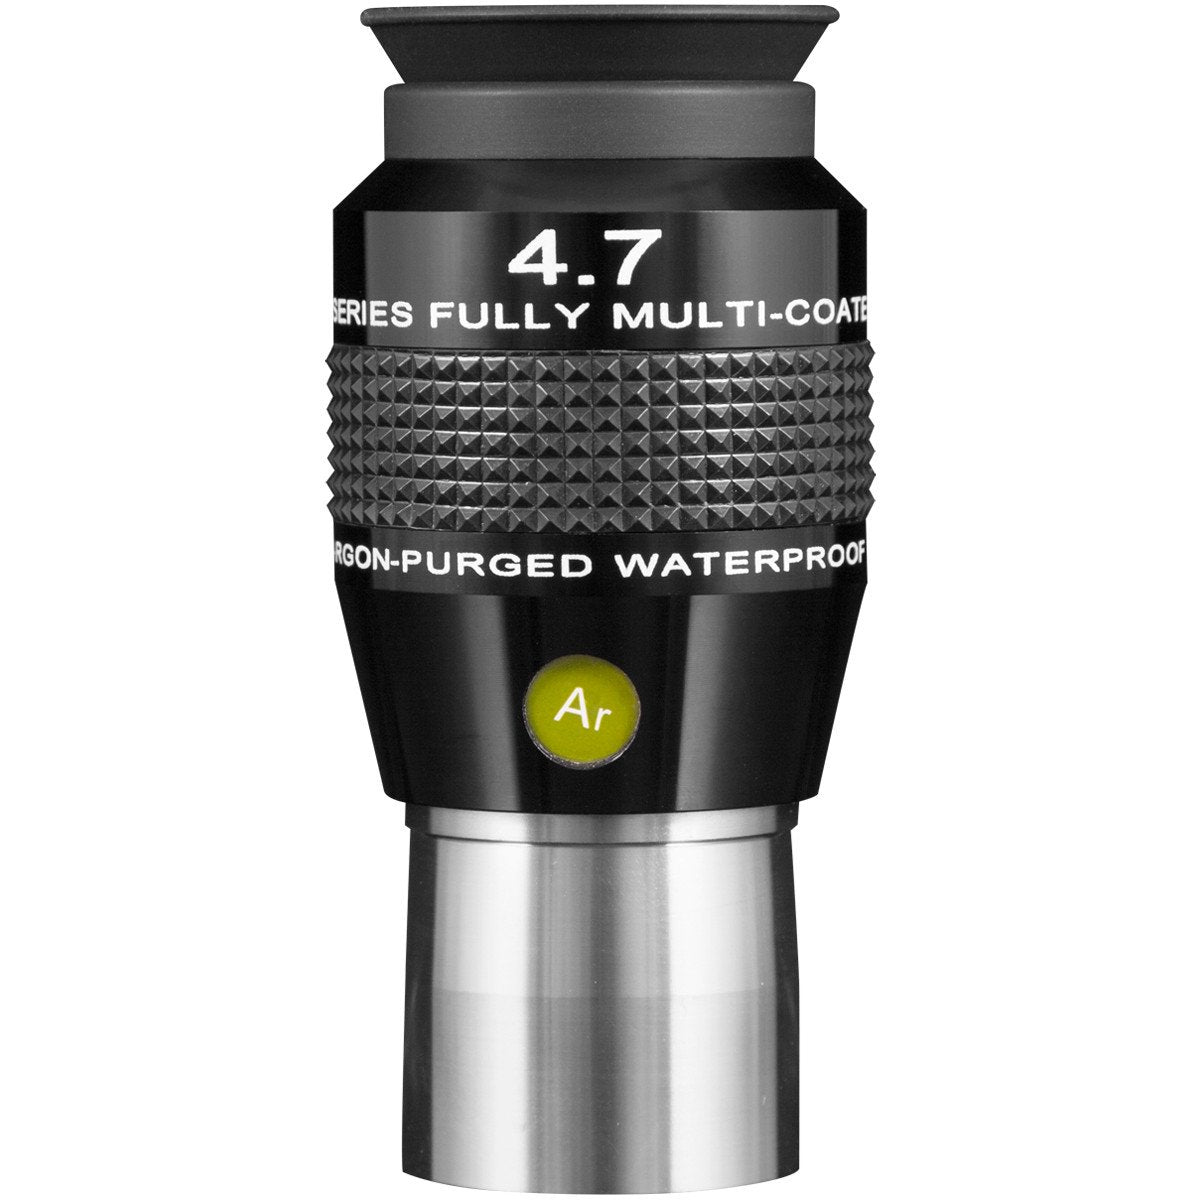 Explore Scientific 4.7mm 82° Series Waterproof Eyepiece